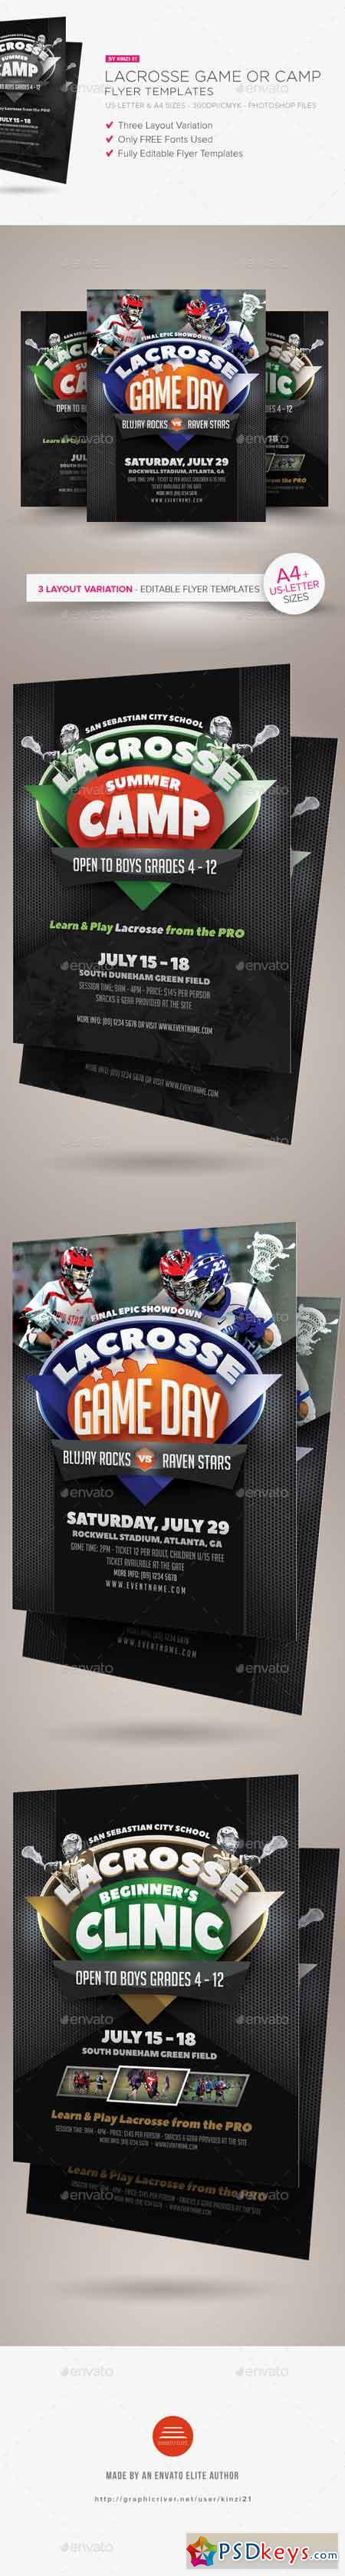 Lacrosse Game or Camp Flyer Templates 16438874